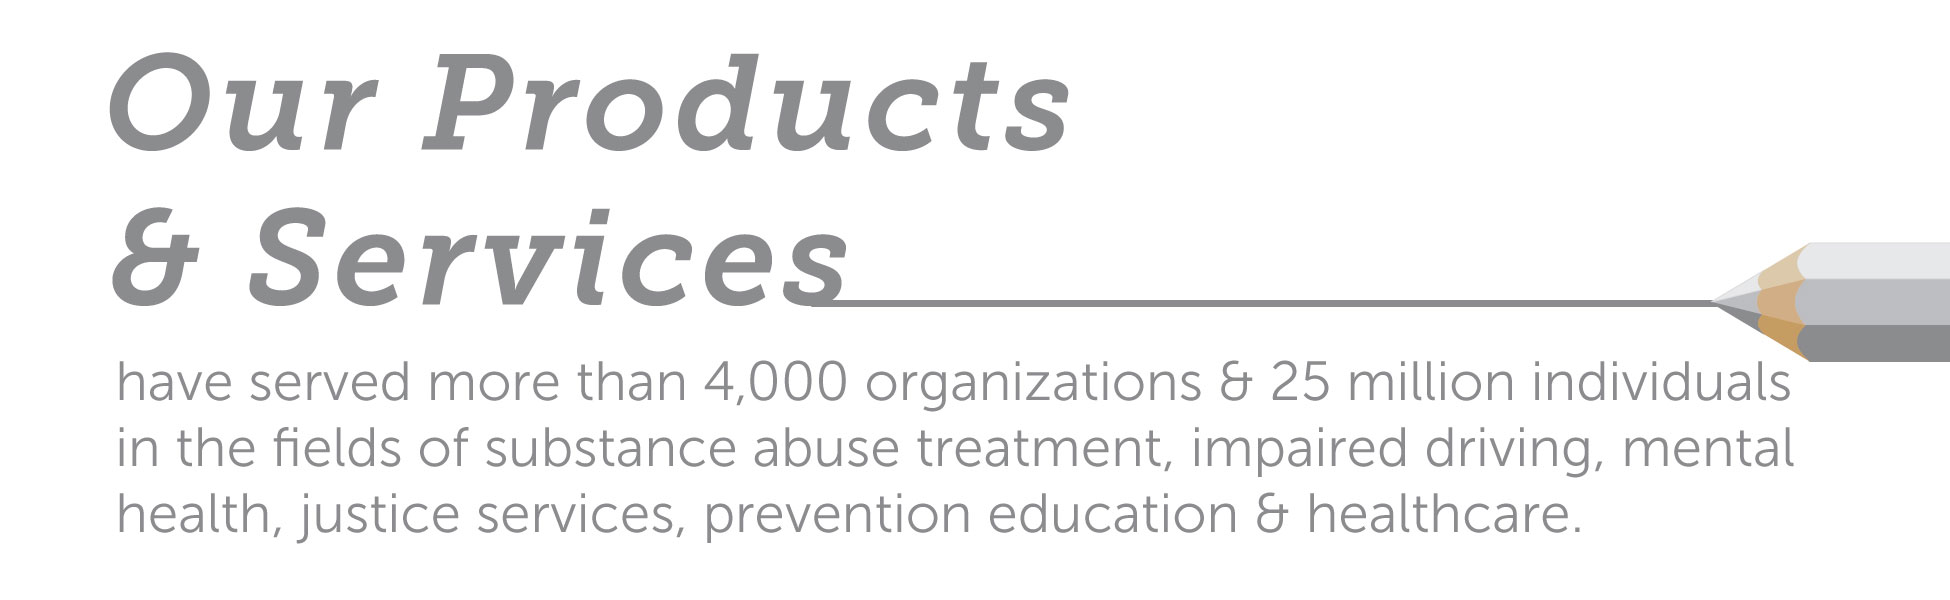 Our products and services have served more than 4,000 organizations and 20 million individuals in the 					fields of substance abuse treatment, impaired driving, mental health, justice services, 					prevention education and healthcare.